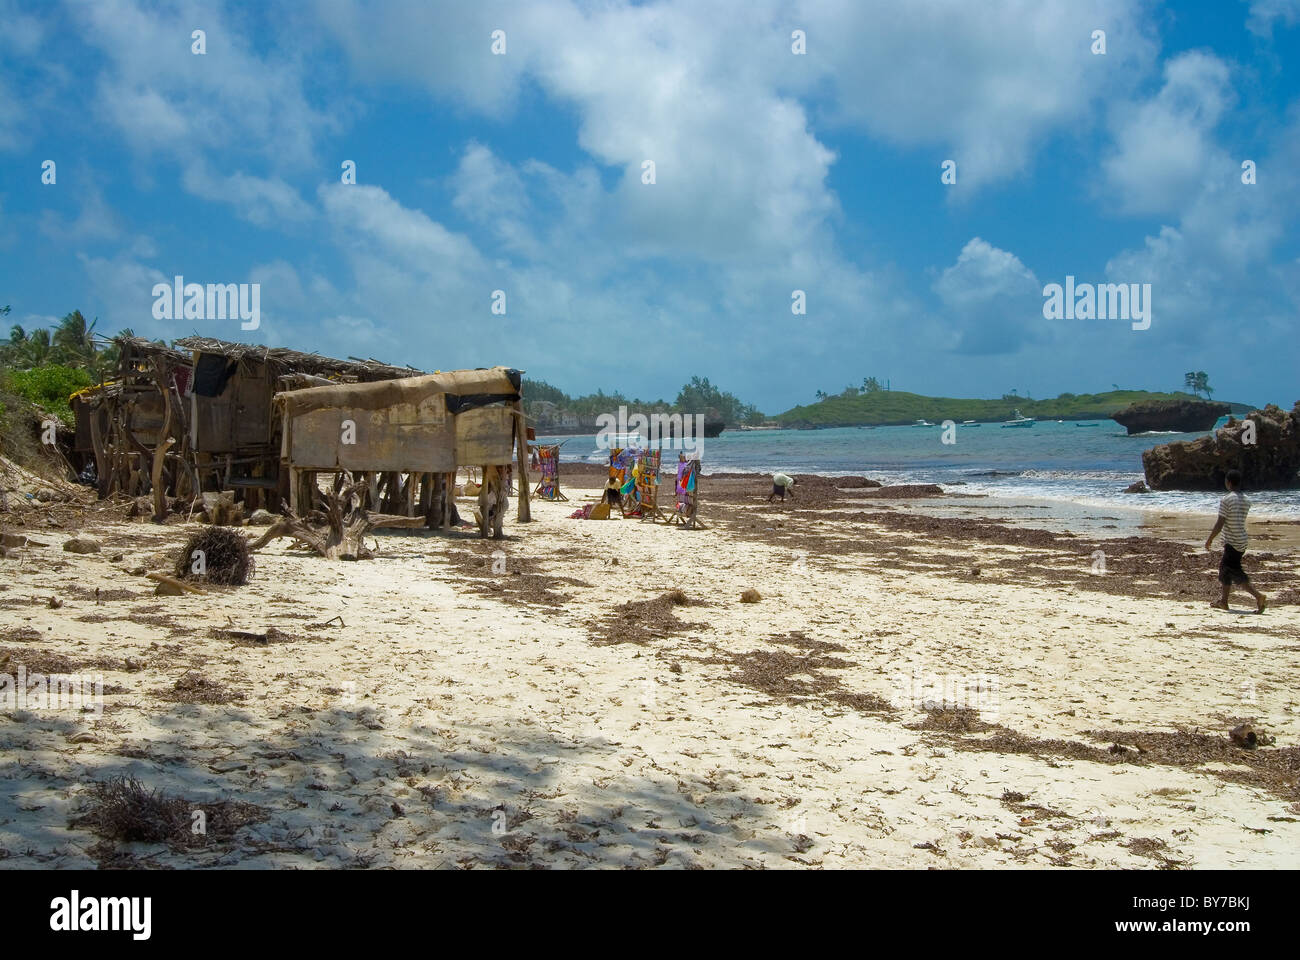 picture postcard image of the beach with duka beach traders at turtle bay in front of Hemingways at Watamu in Kenya - Stock Image